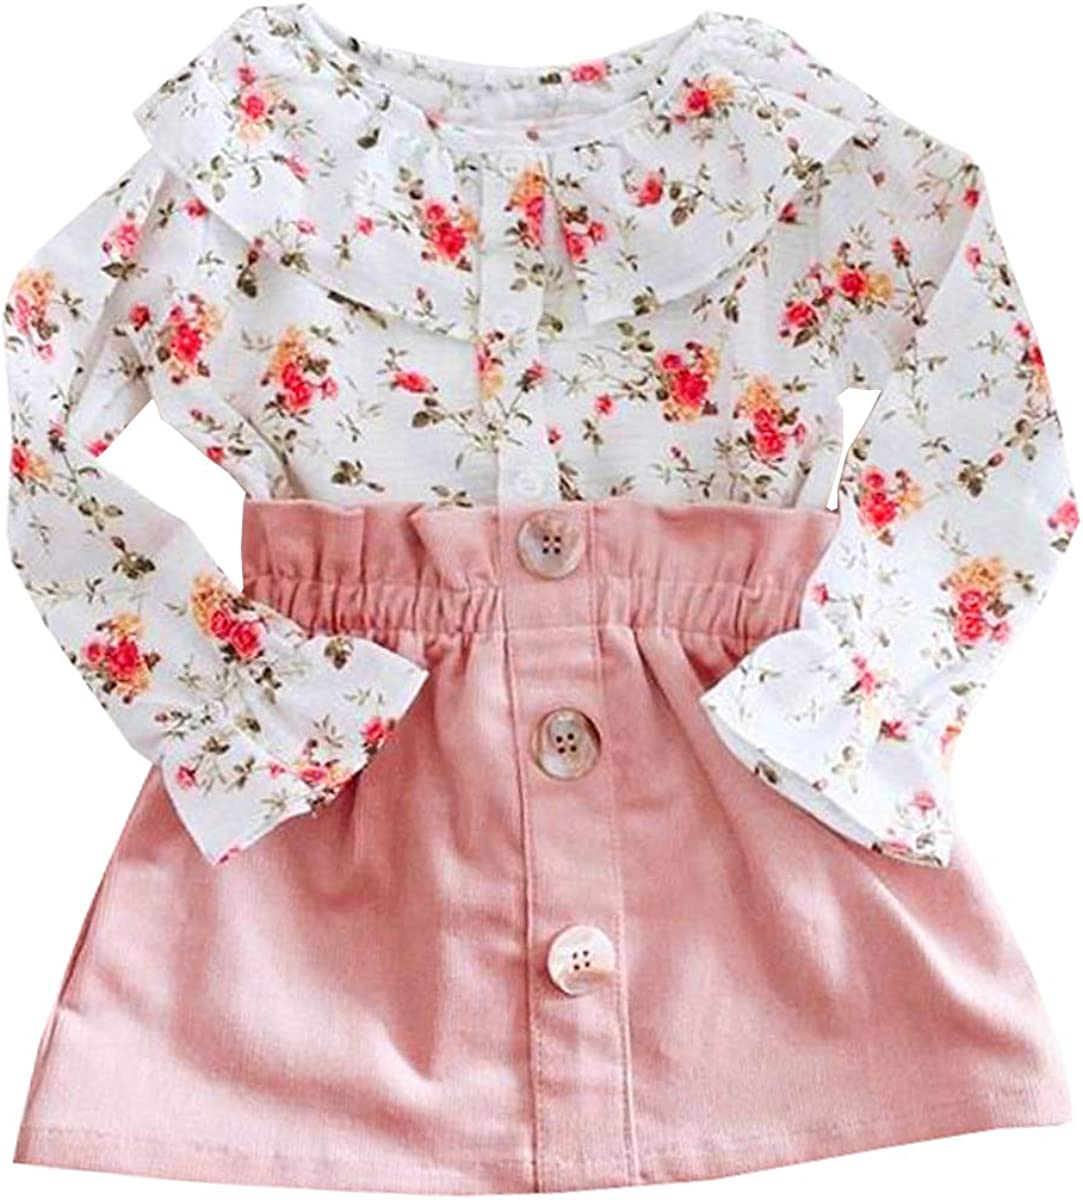 US Toddler Kids Baby Girls Clothes Lace Ruffle T Shirt Tops Strap Skirt Outfits